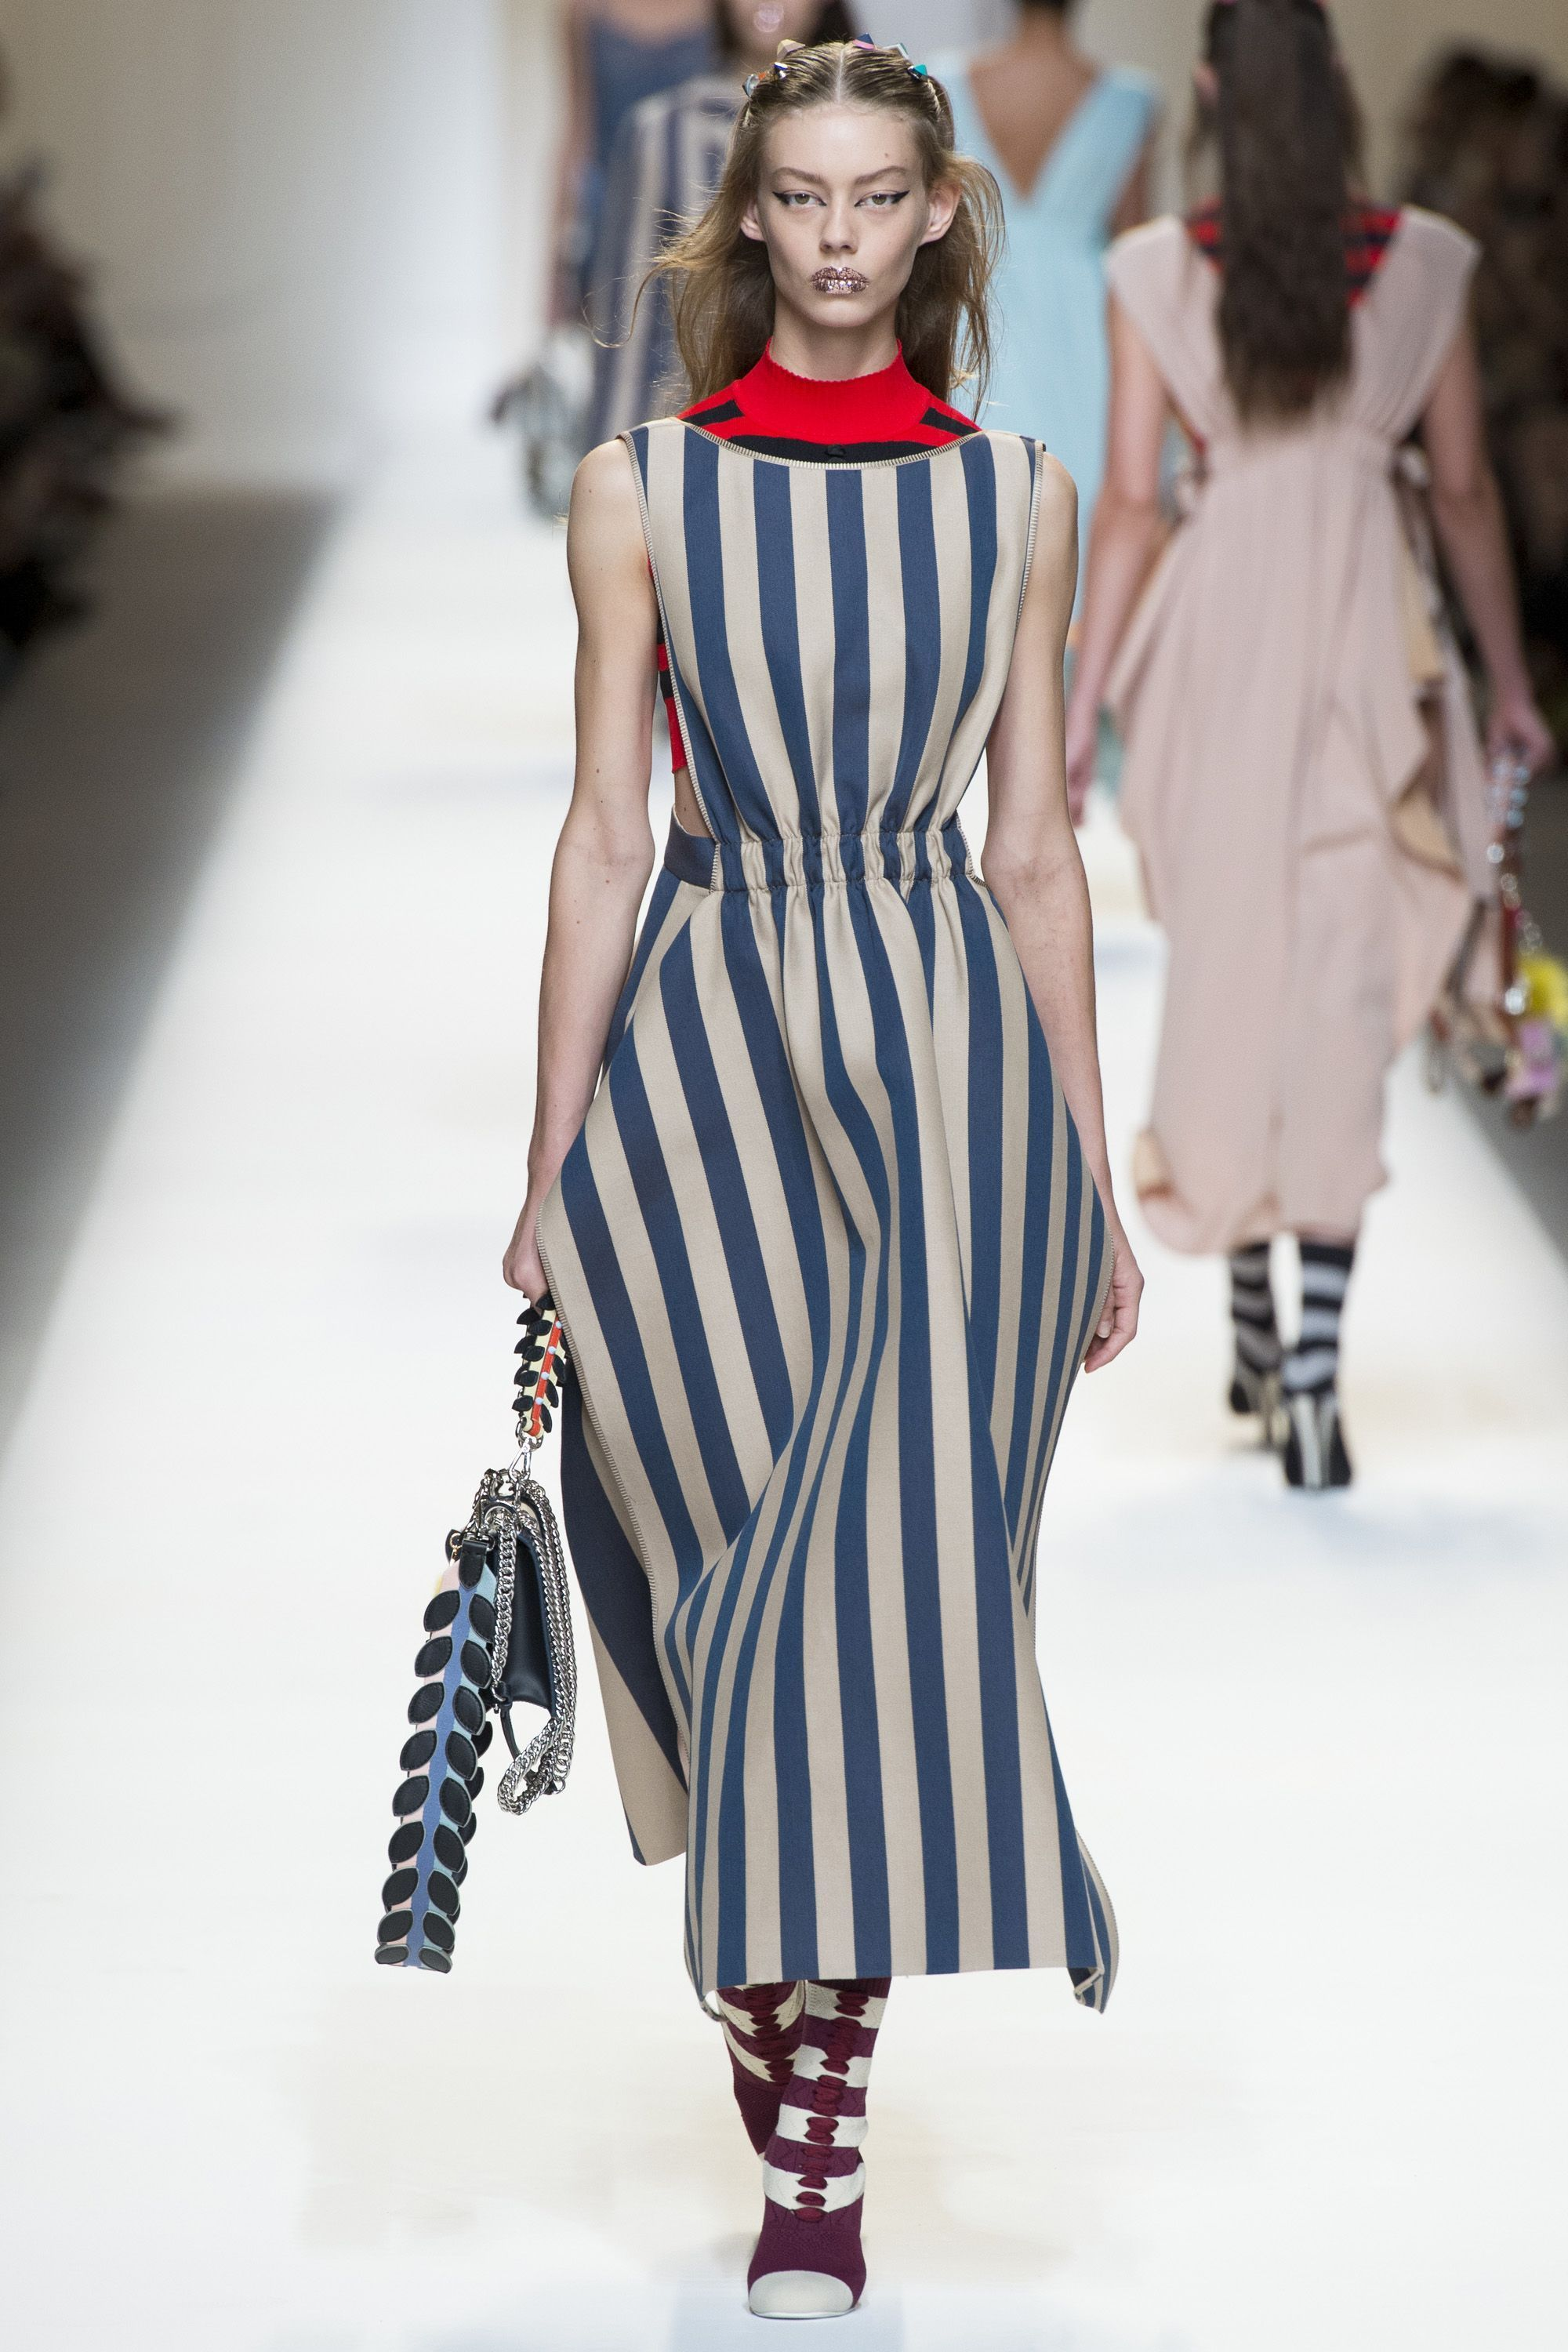 Fendi Spring/Summer 2017 Ready To Wear Collection